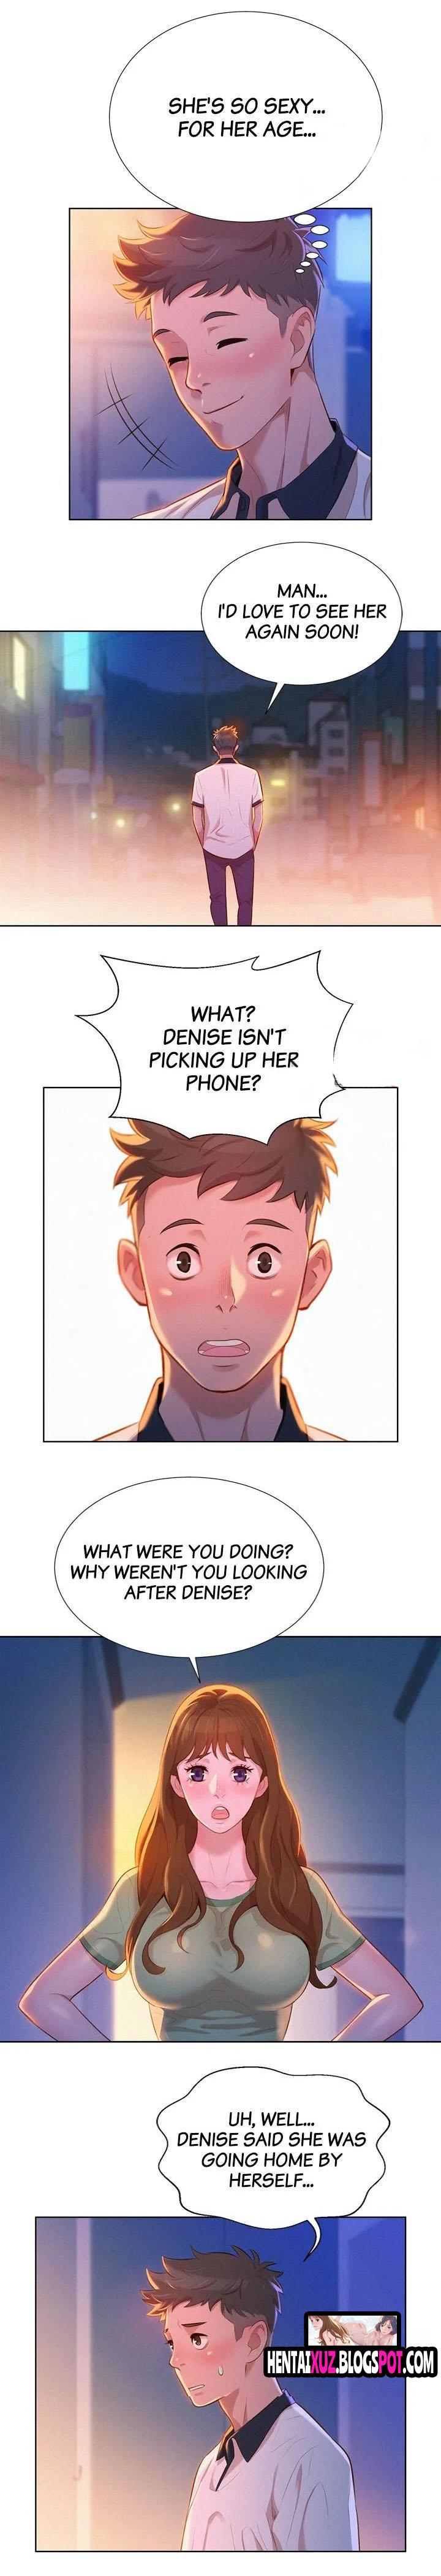 What do you Take me For? Ch.42/? 117